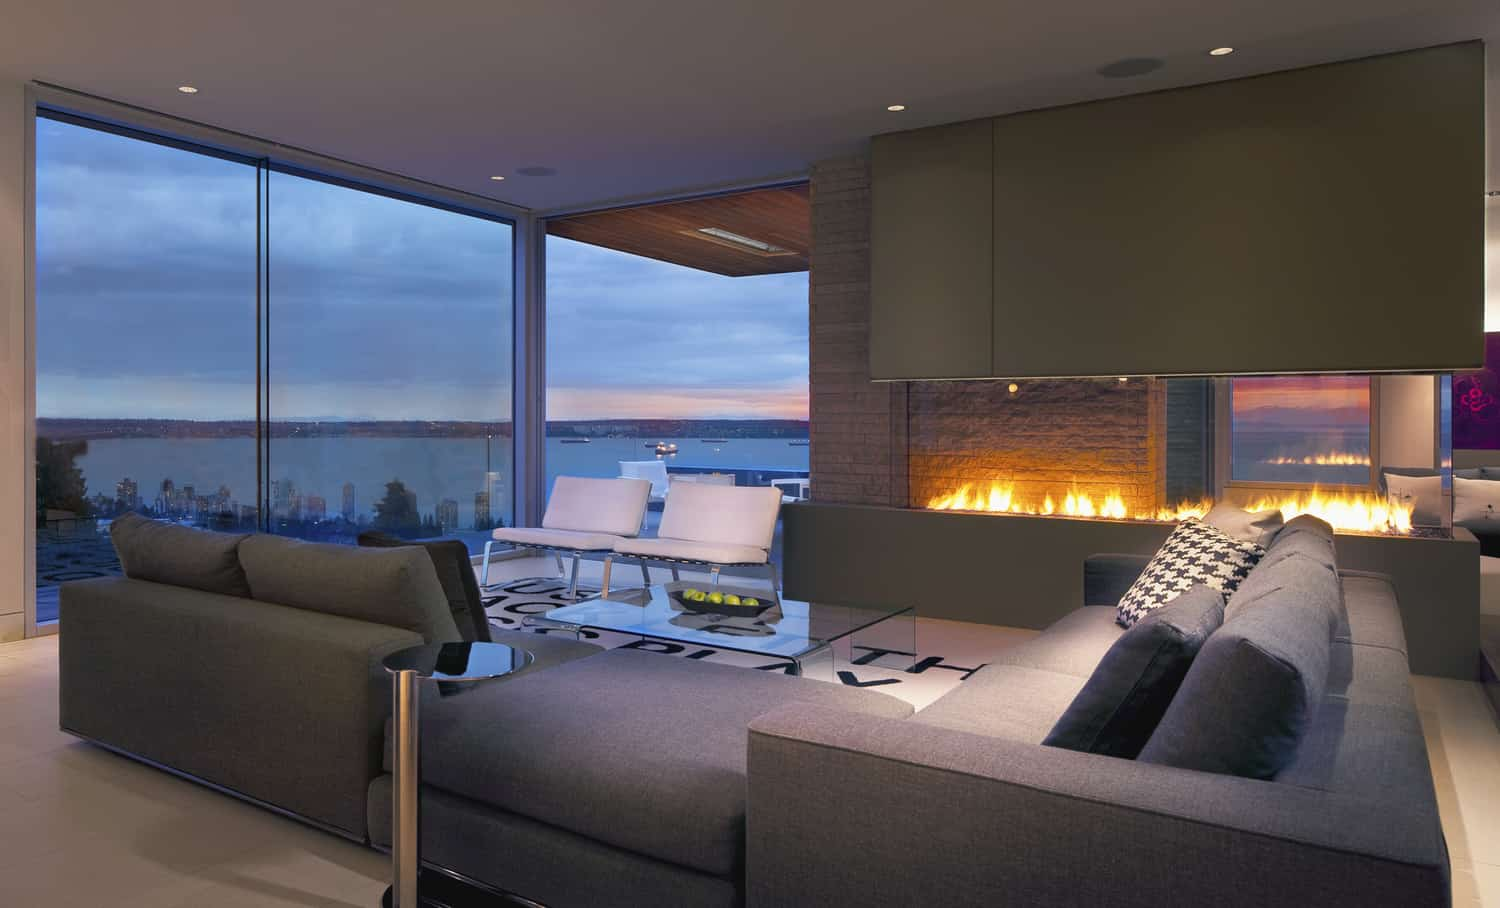 Living Room With A View Of The Ocean And Fire